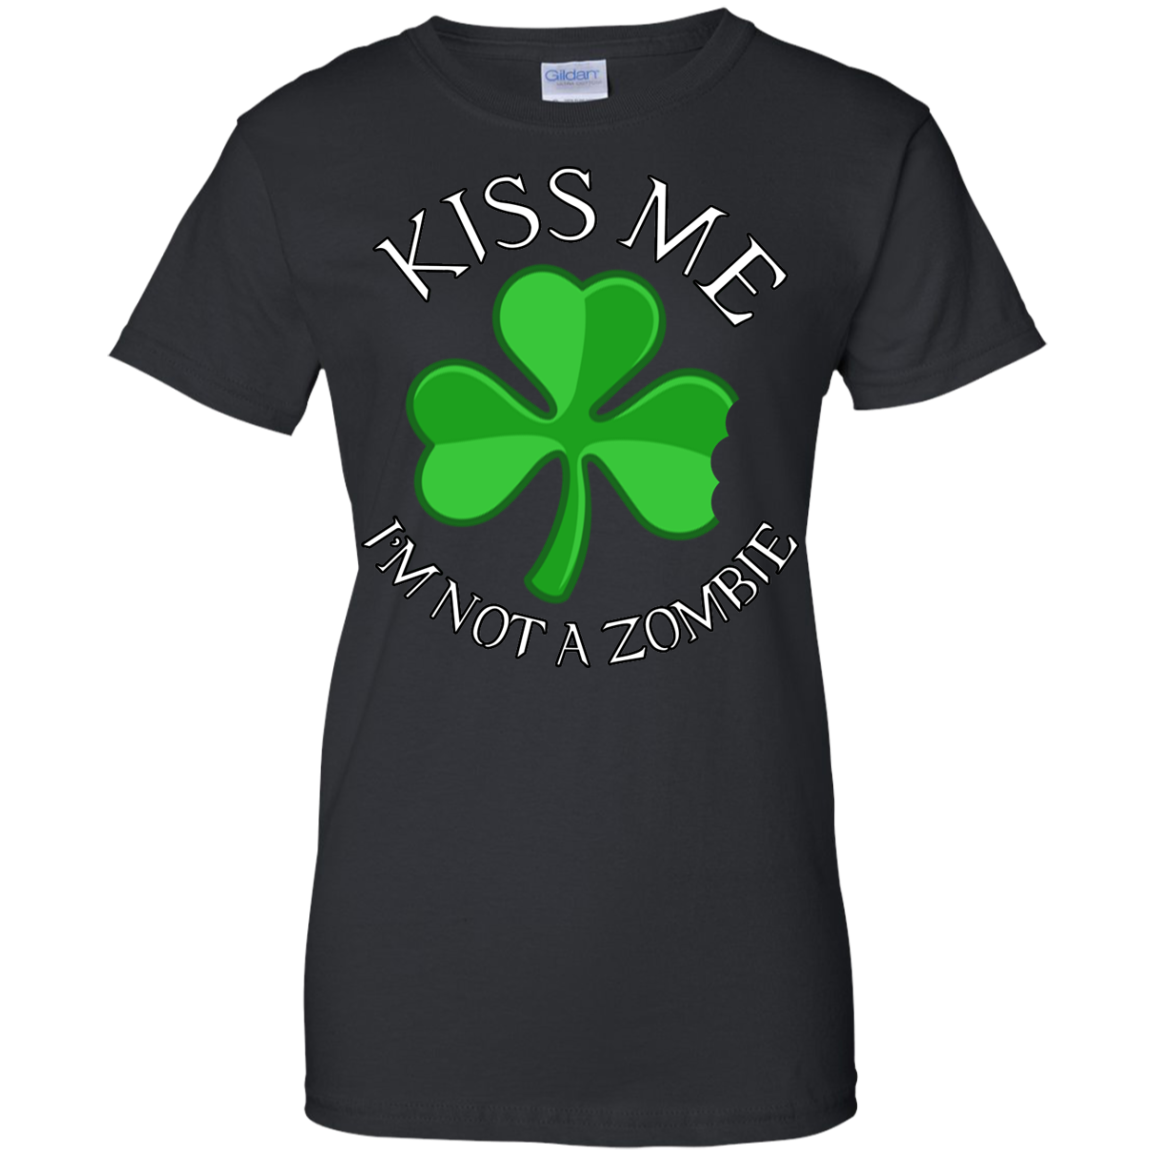 Kiss Me I Am NOT A Zombie Irish St Patricks Day Clothing St Patrick's Day Shirts Hoodies For Women And Men - Blue Fox